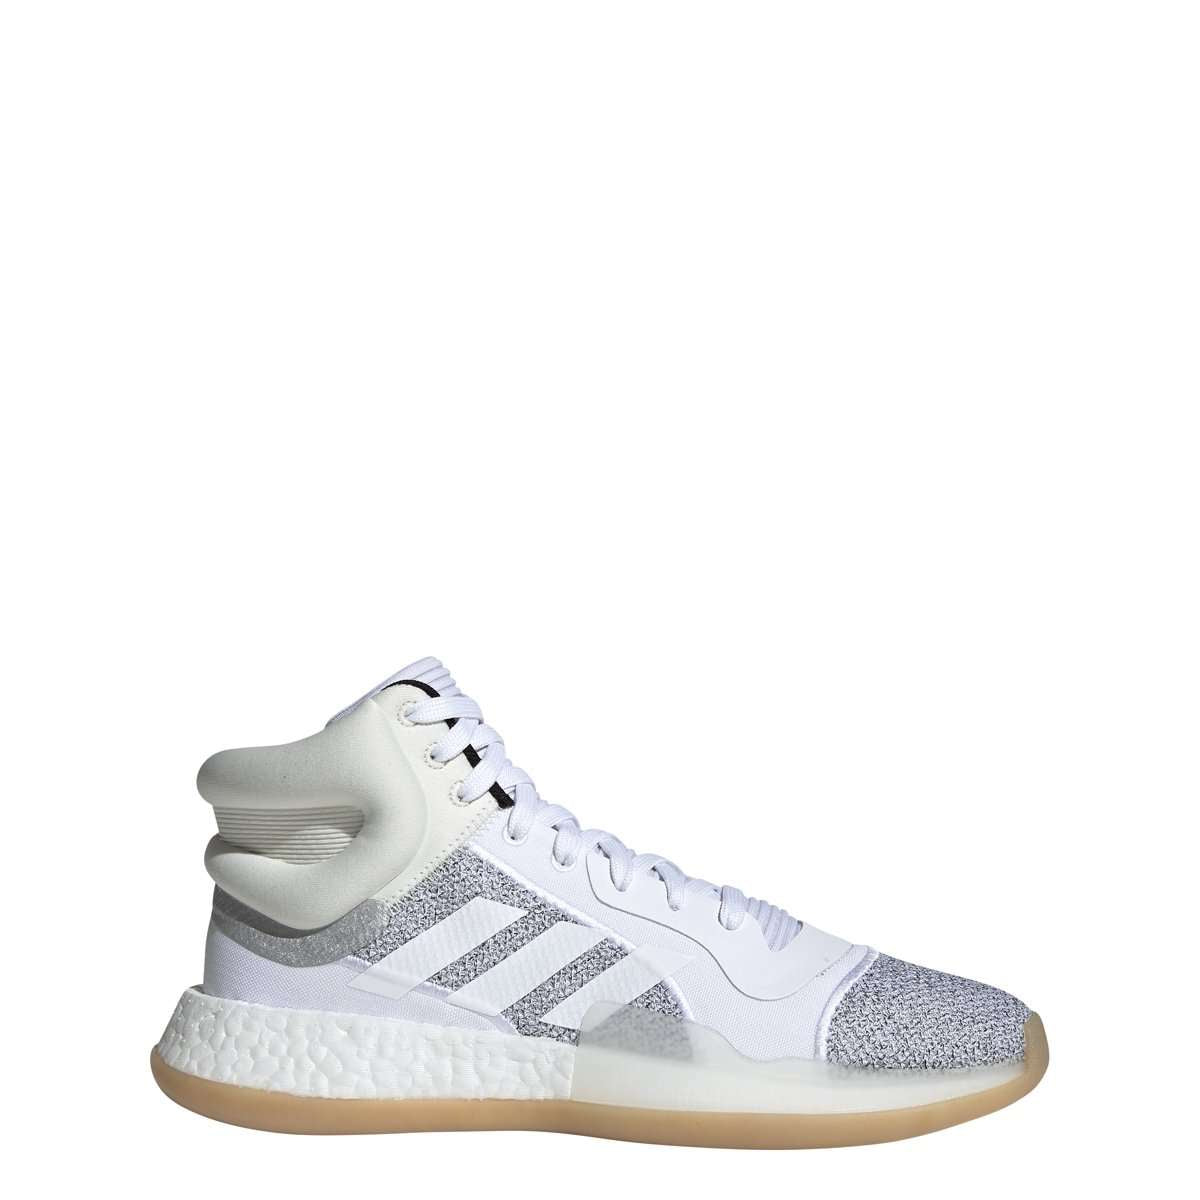 95b7f176 adidas Marquee Boost Men's Basketball Shoes